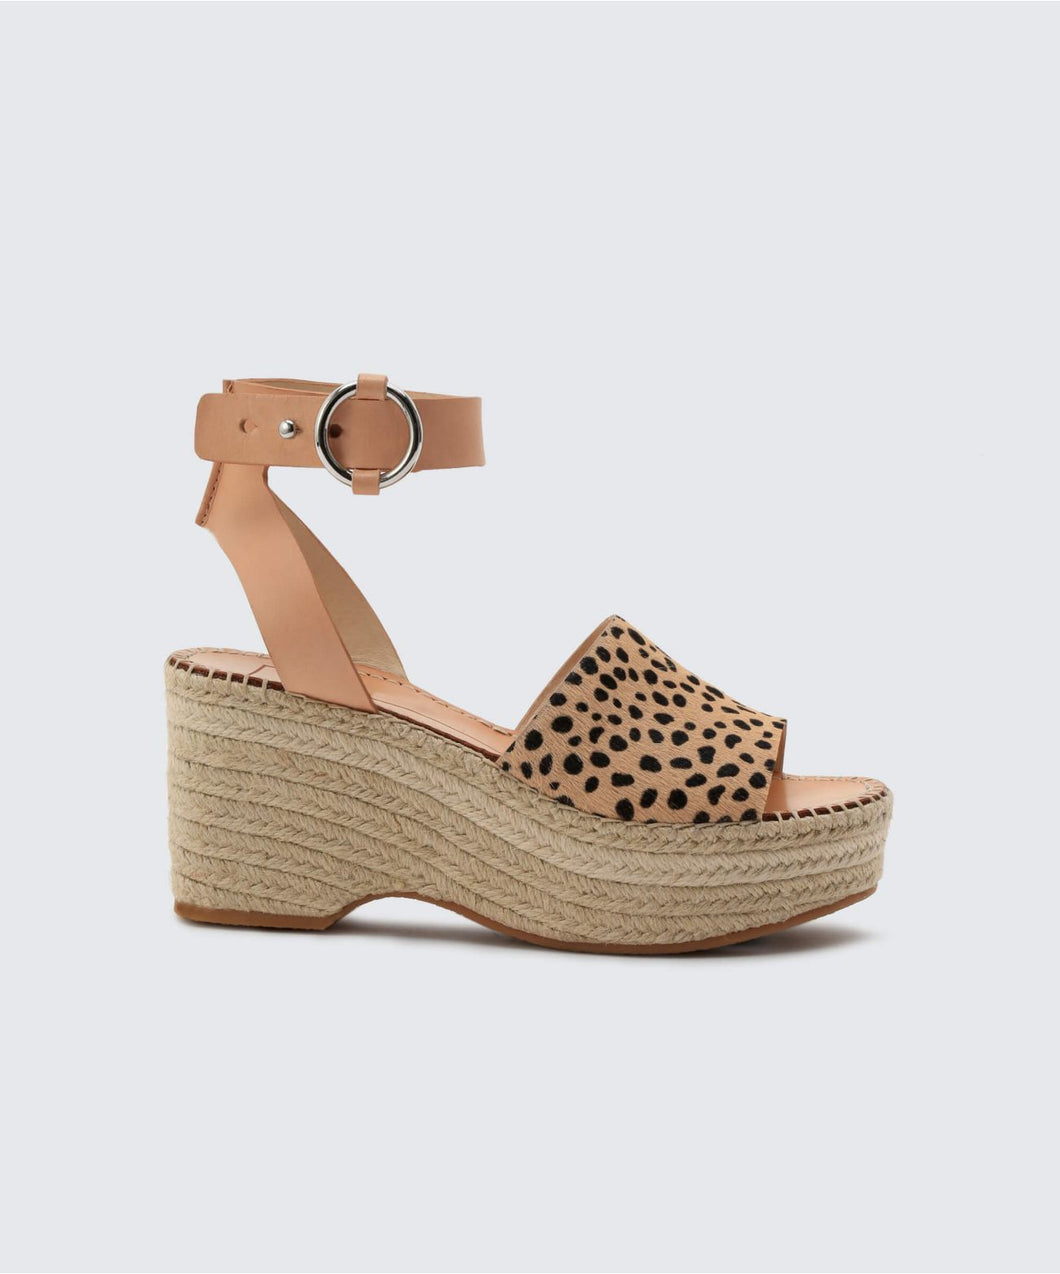 LESLY WEDGES LEOPARD -   Dolce Vita